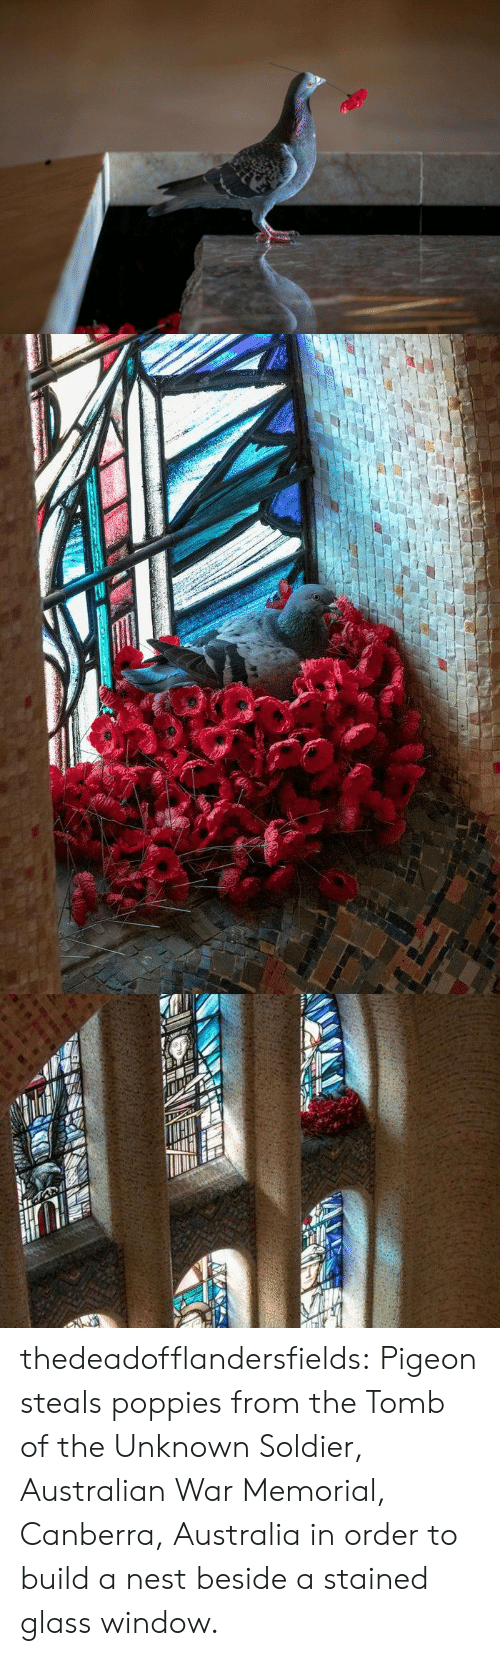 soldier: thedeadofflandersfields:  Pigeon steals poppies from the Tomb of the Unknown Soldier, Australian War Memorial, Canberra, Australia in order to build a nest beside a stained glass window.